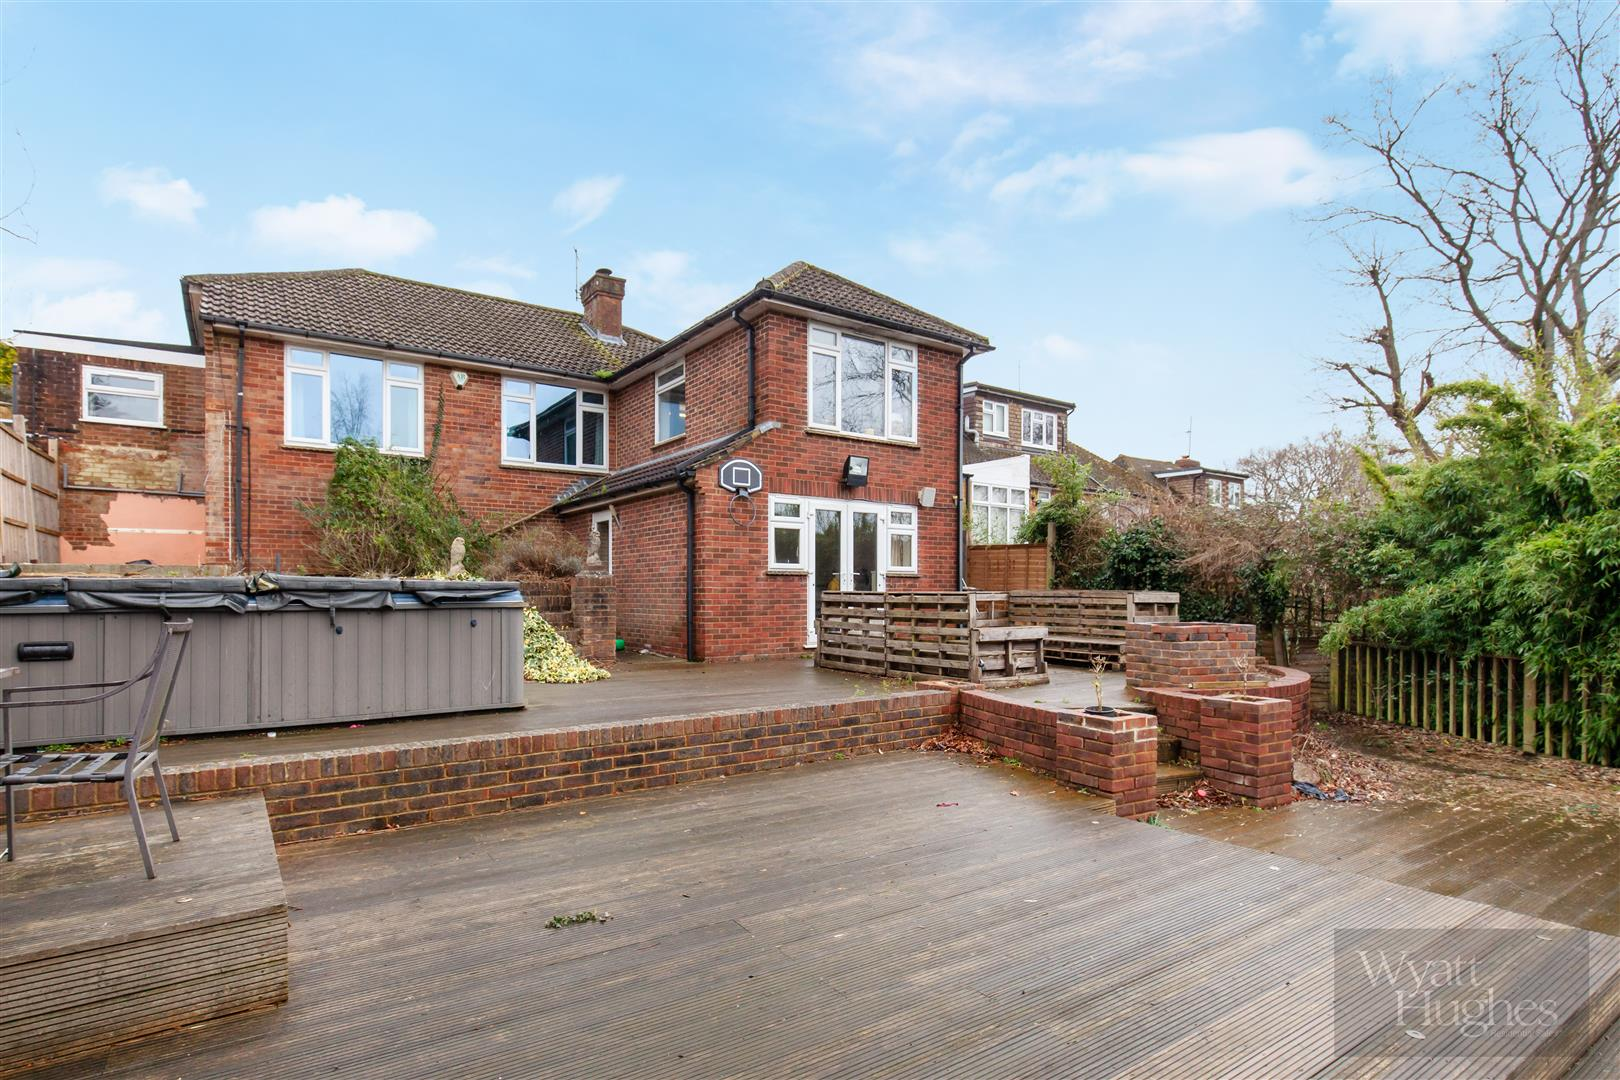 4 bed detached-bungalow for sale in Gorselands, Battle  - Property Image 27